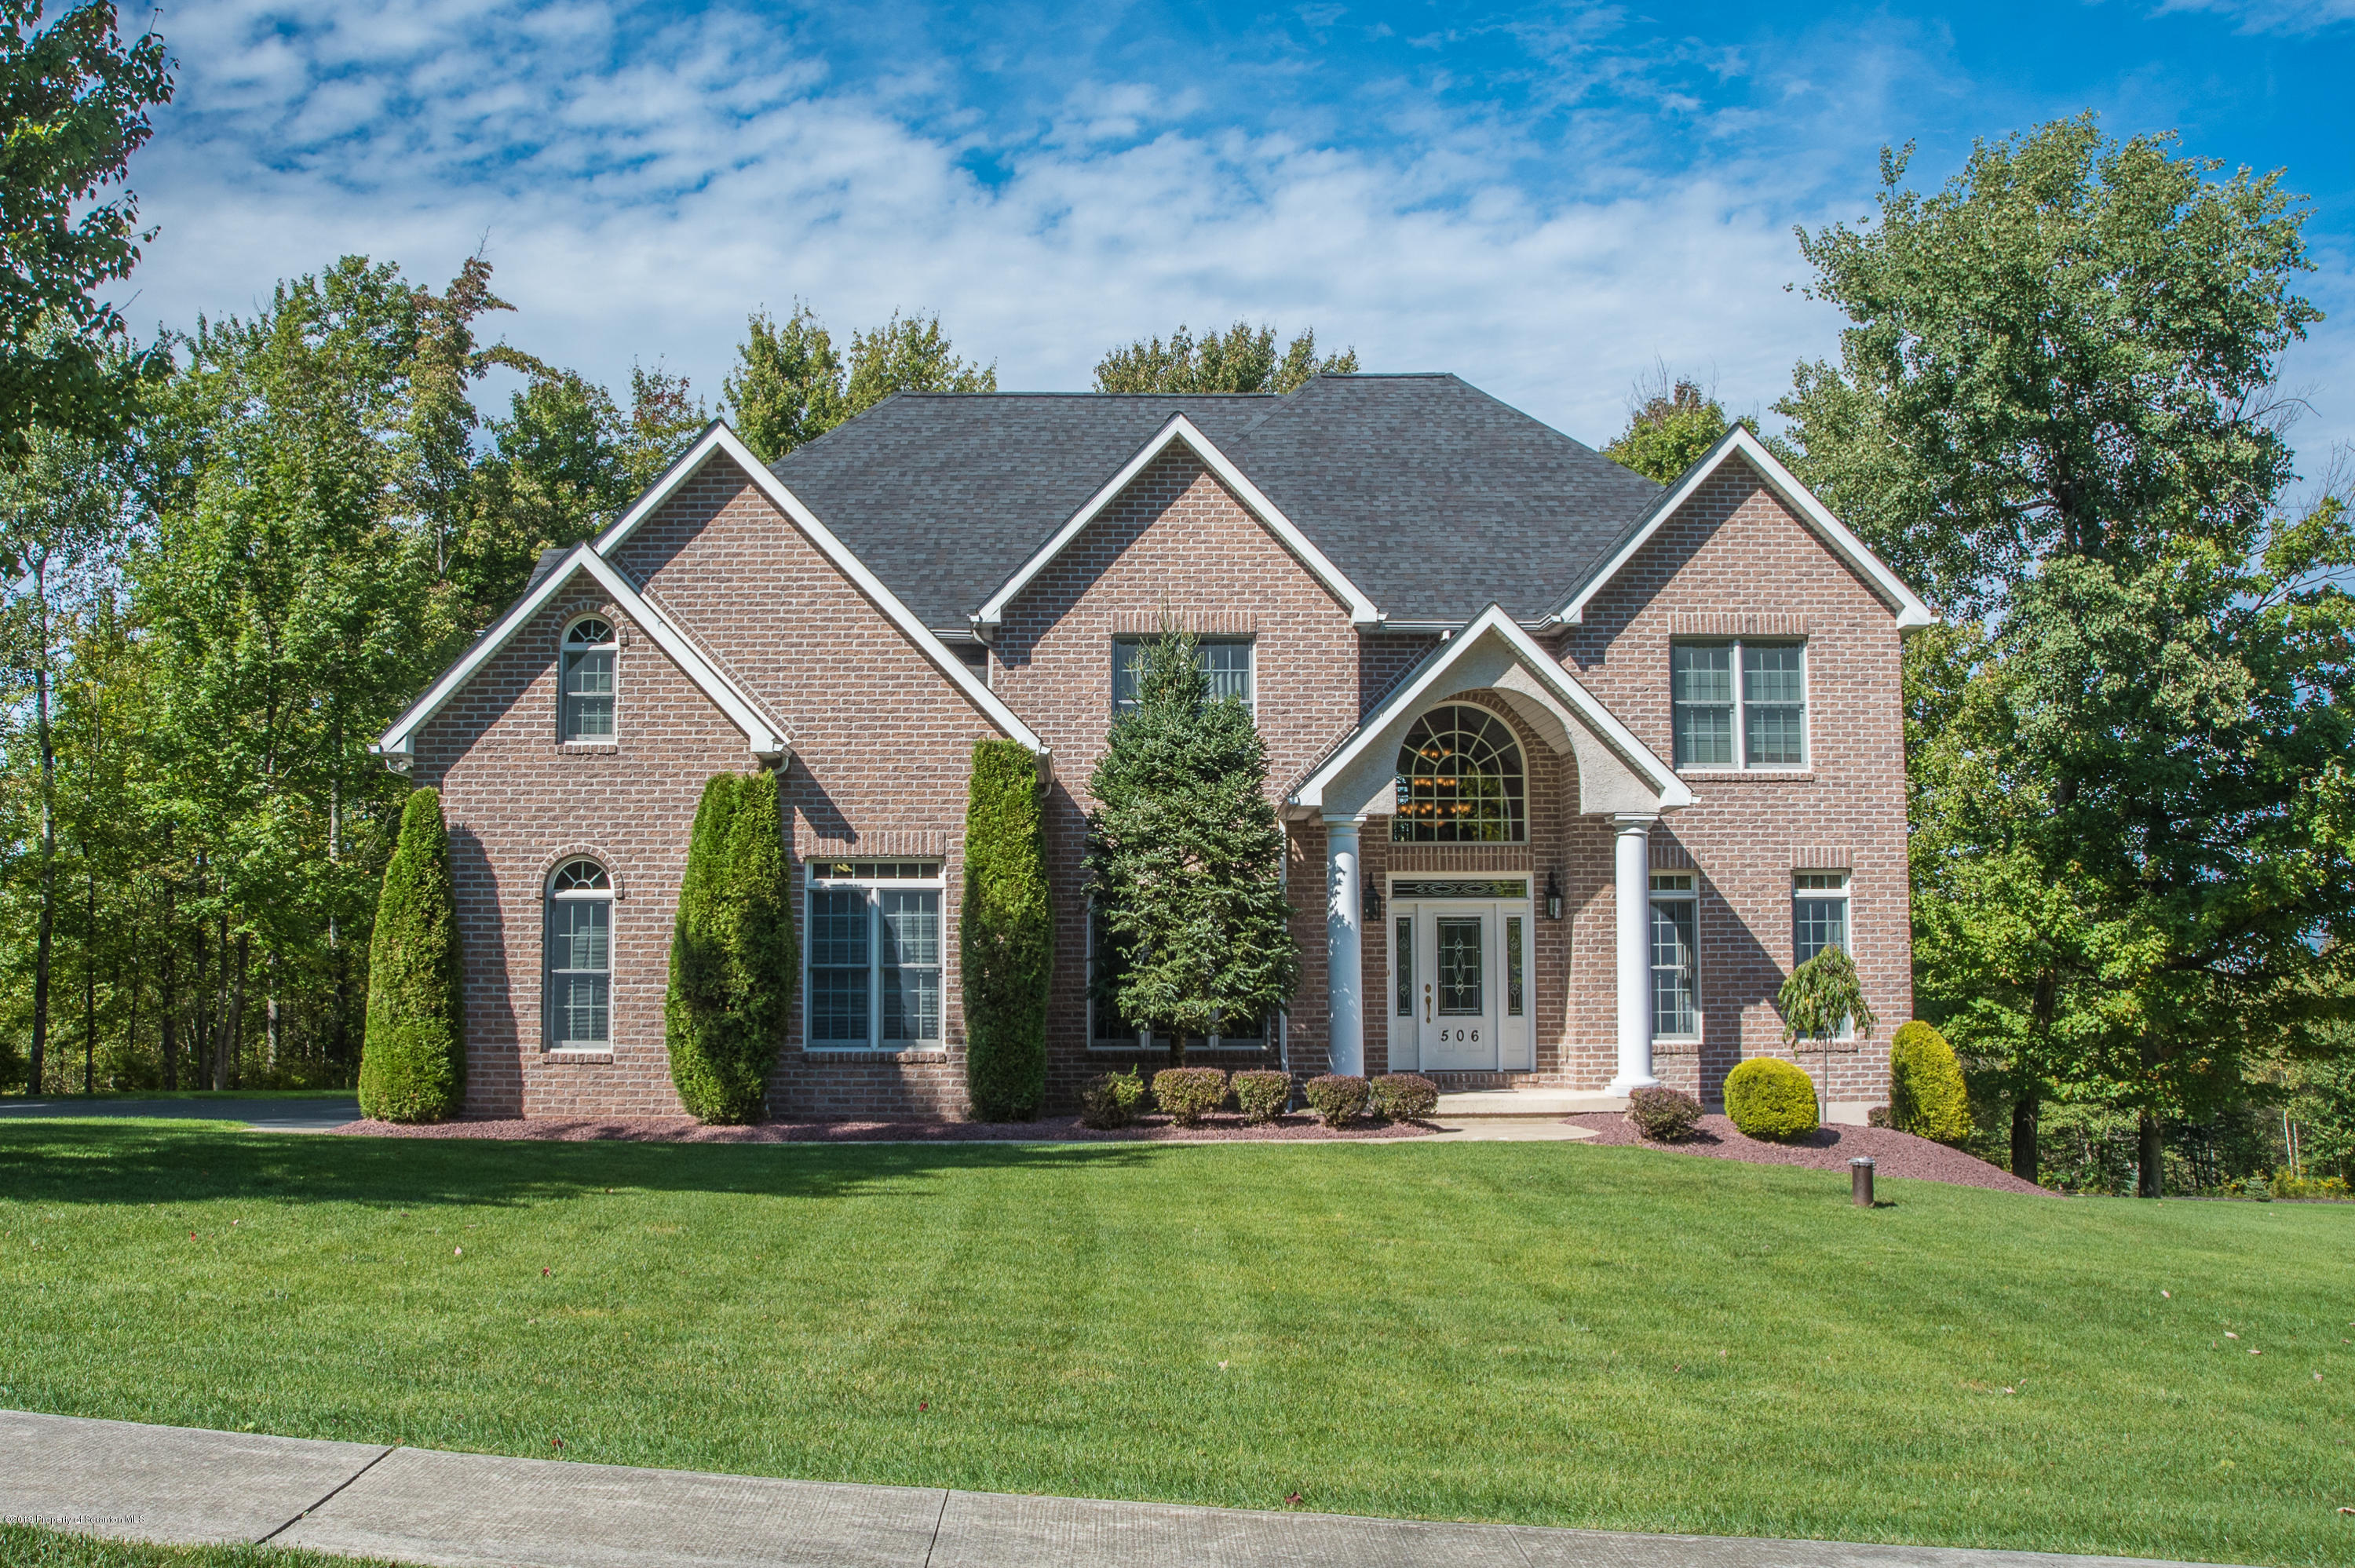 506 Hideaway Dr, Moscow, Pennsylvania 18444, 5 Bedrooms Bedrooms, 10 Rooms Rooms,3 BathroomsBathrooms,Single Family,For Sale,Hideaway,19-5317